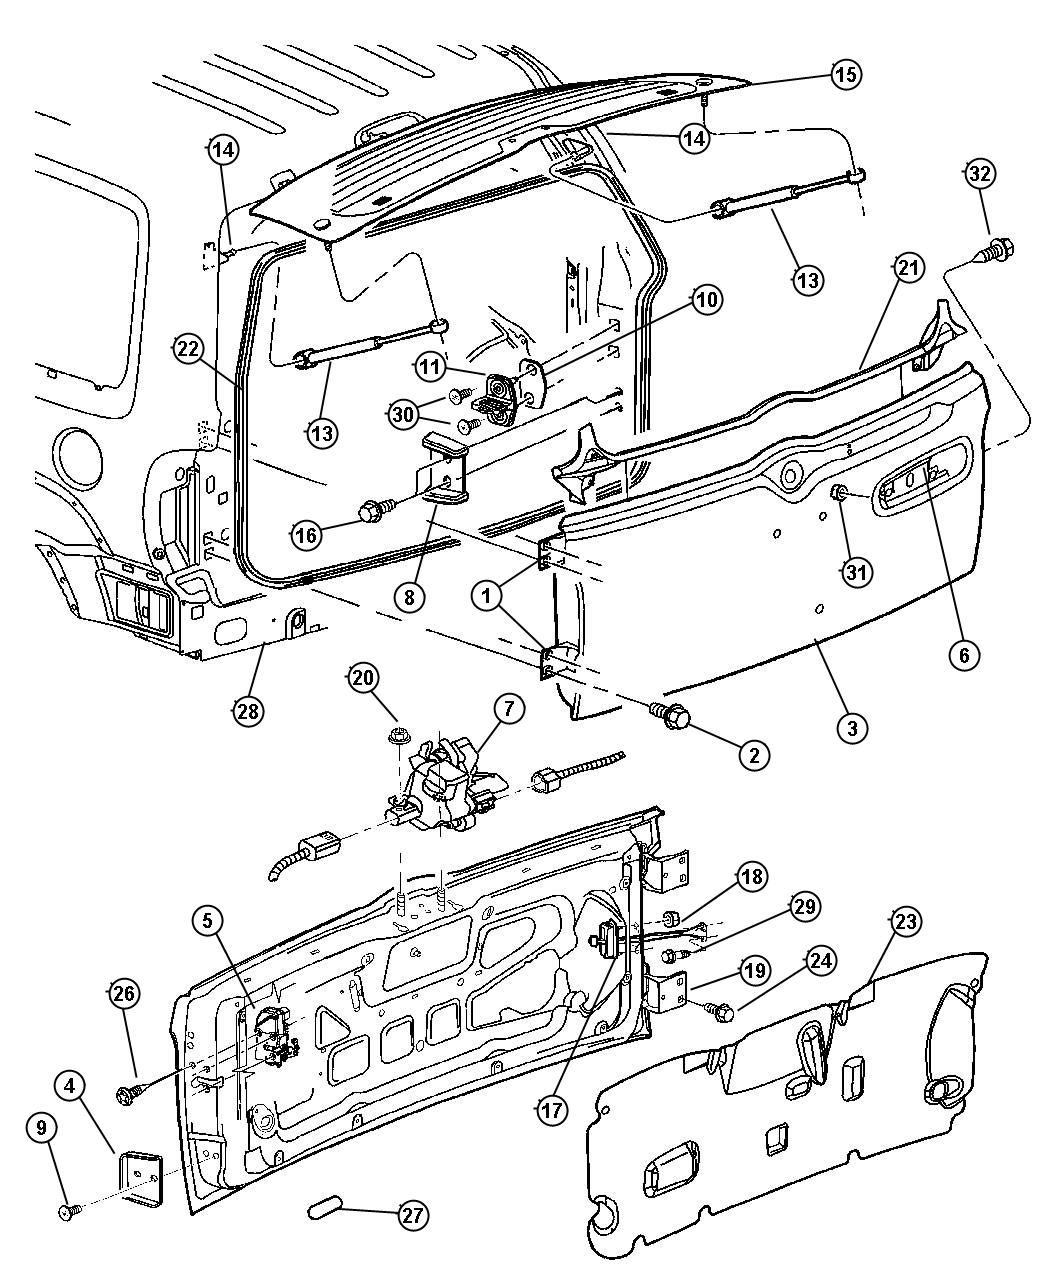 98 dodge tailgate parts diagram  dodge  auto wiring diagram